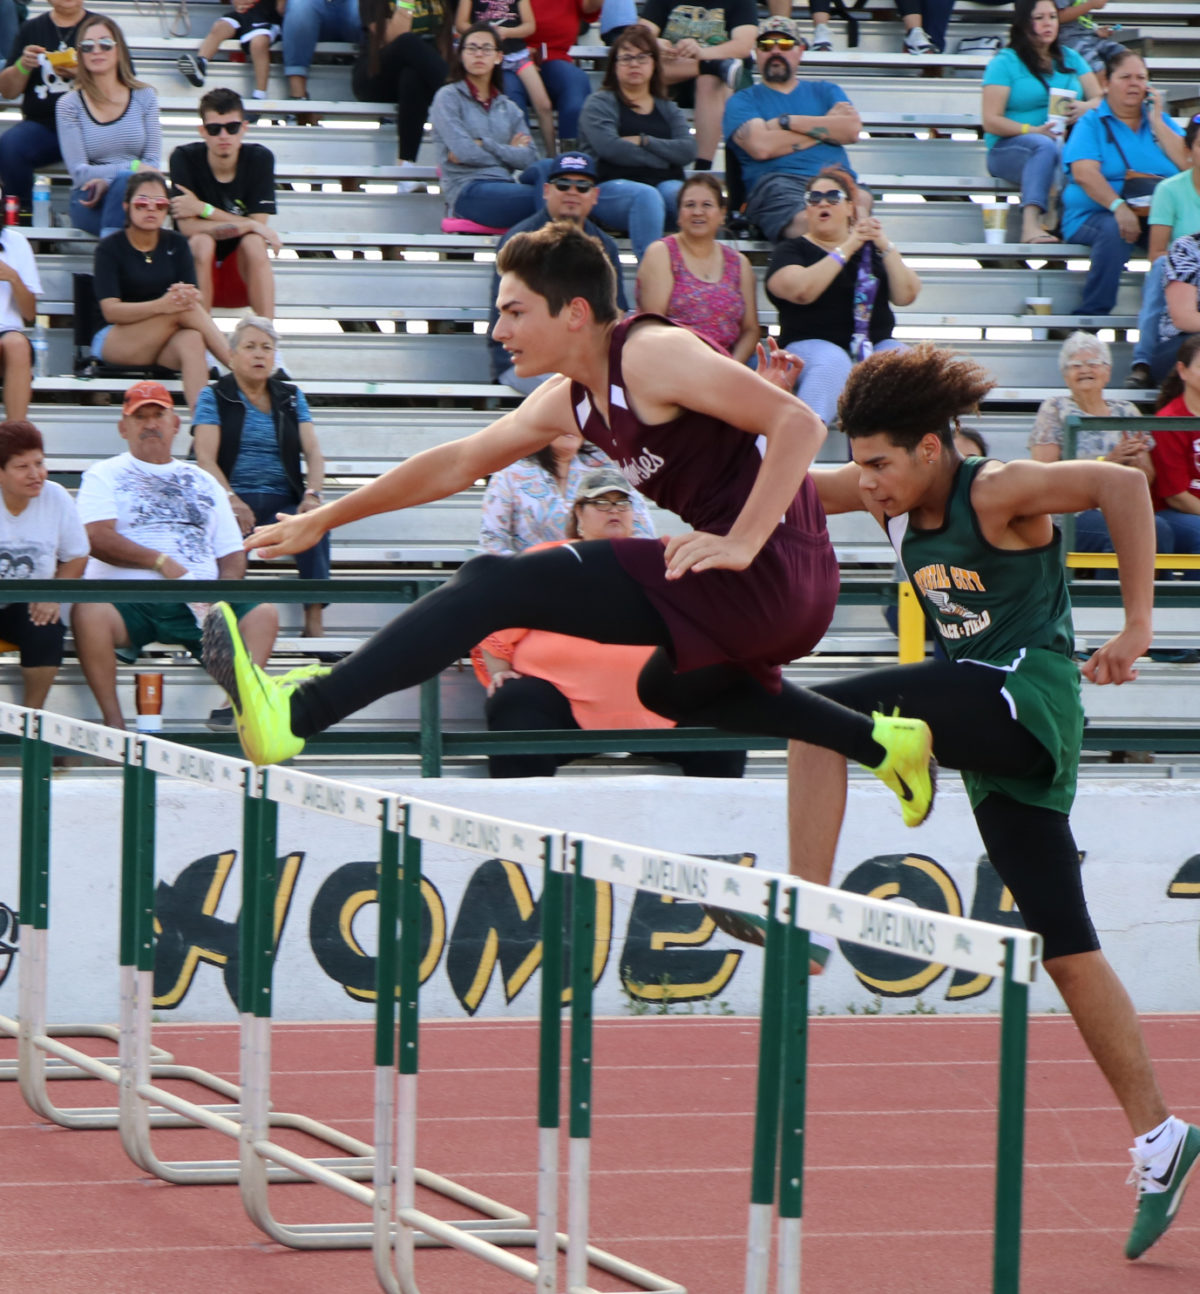 JV Warhorses finish 3rd in District track